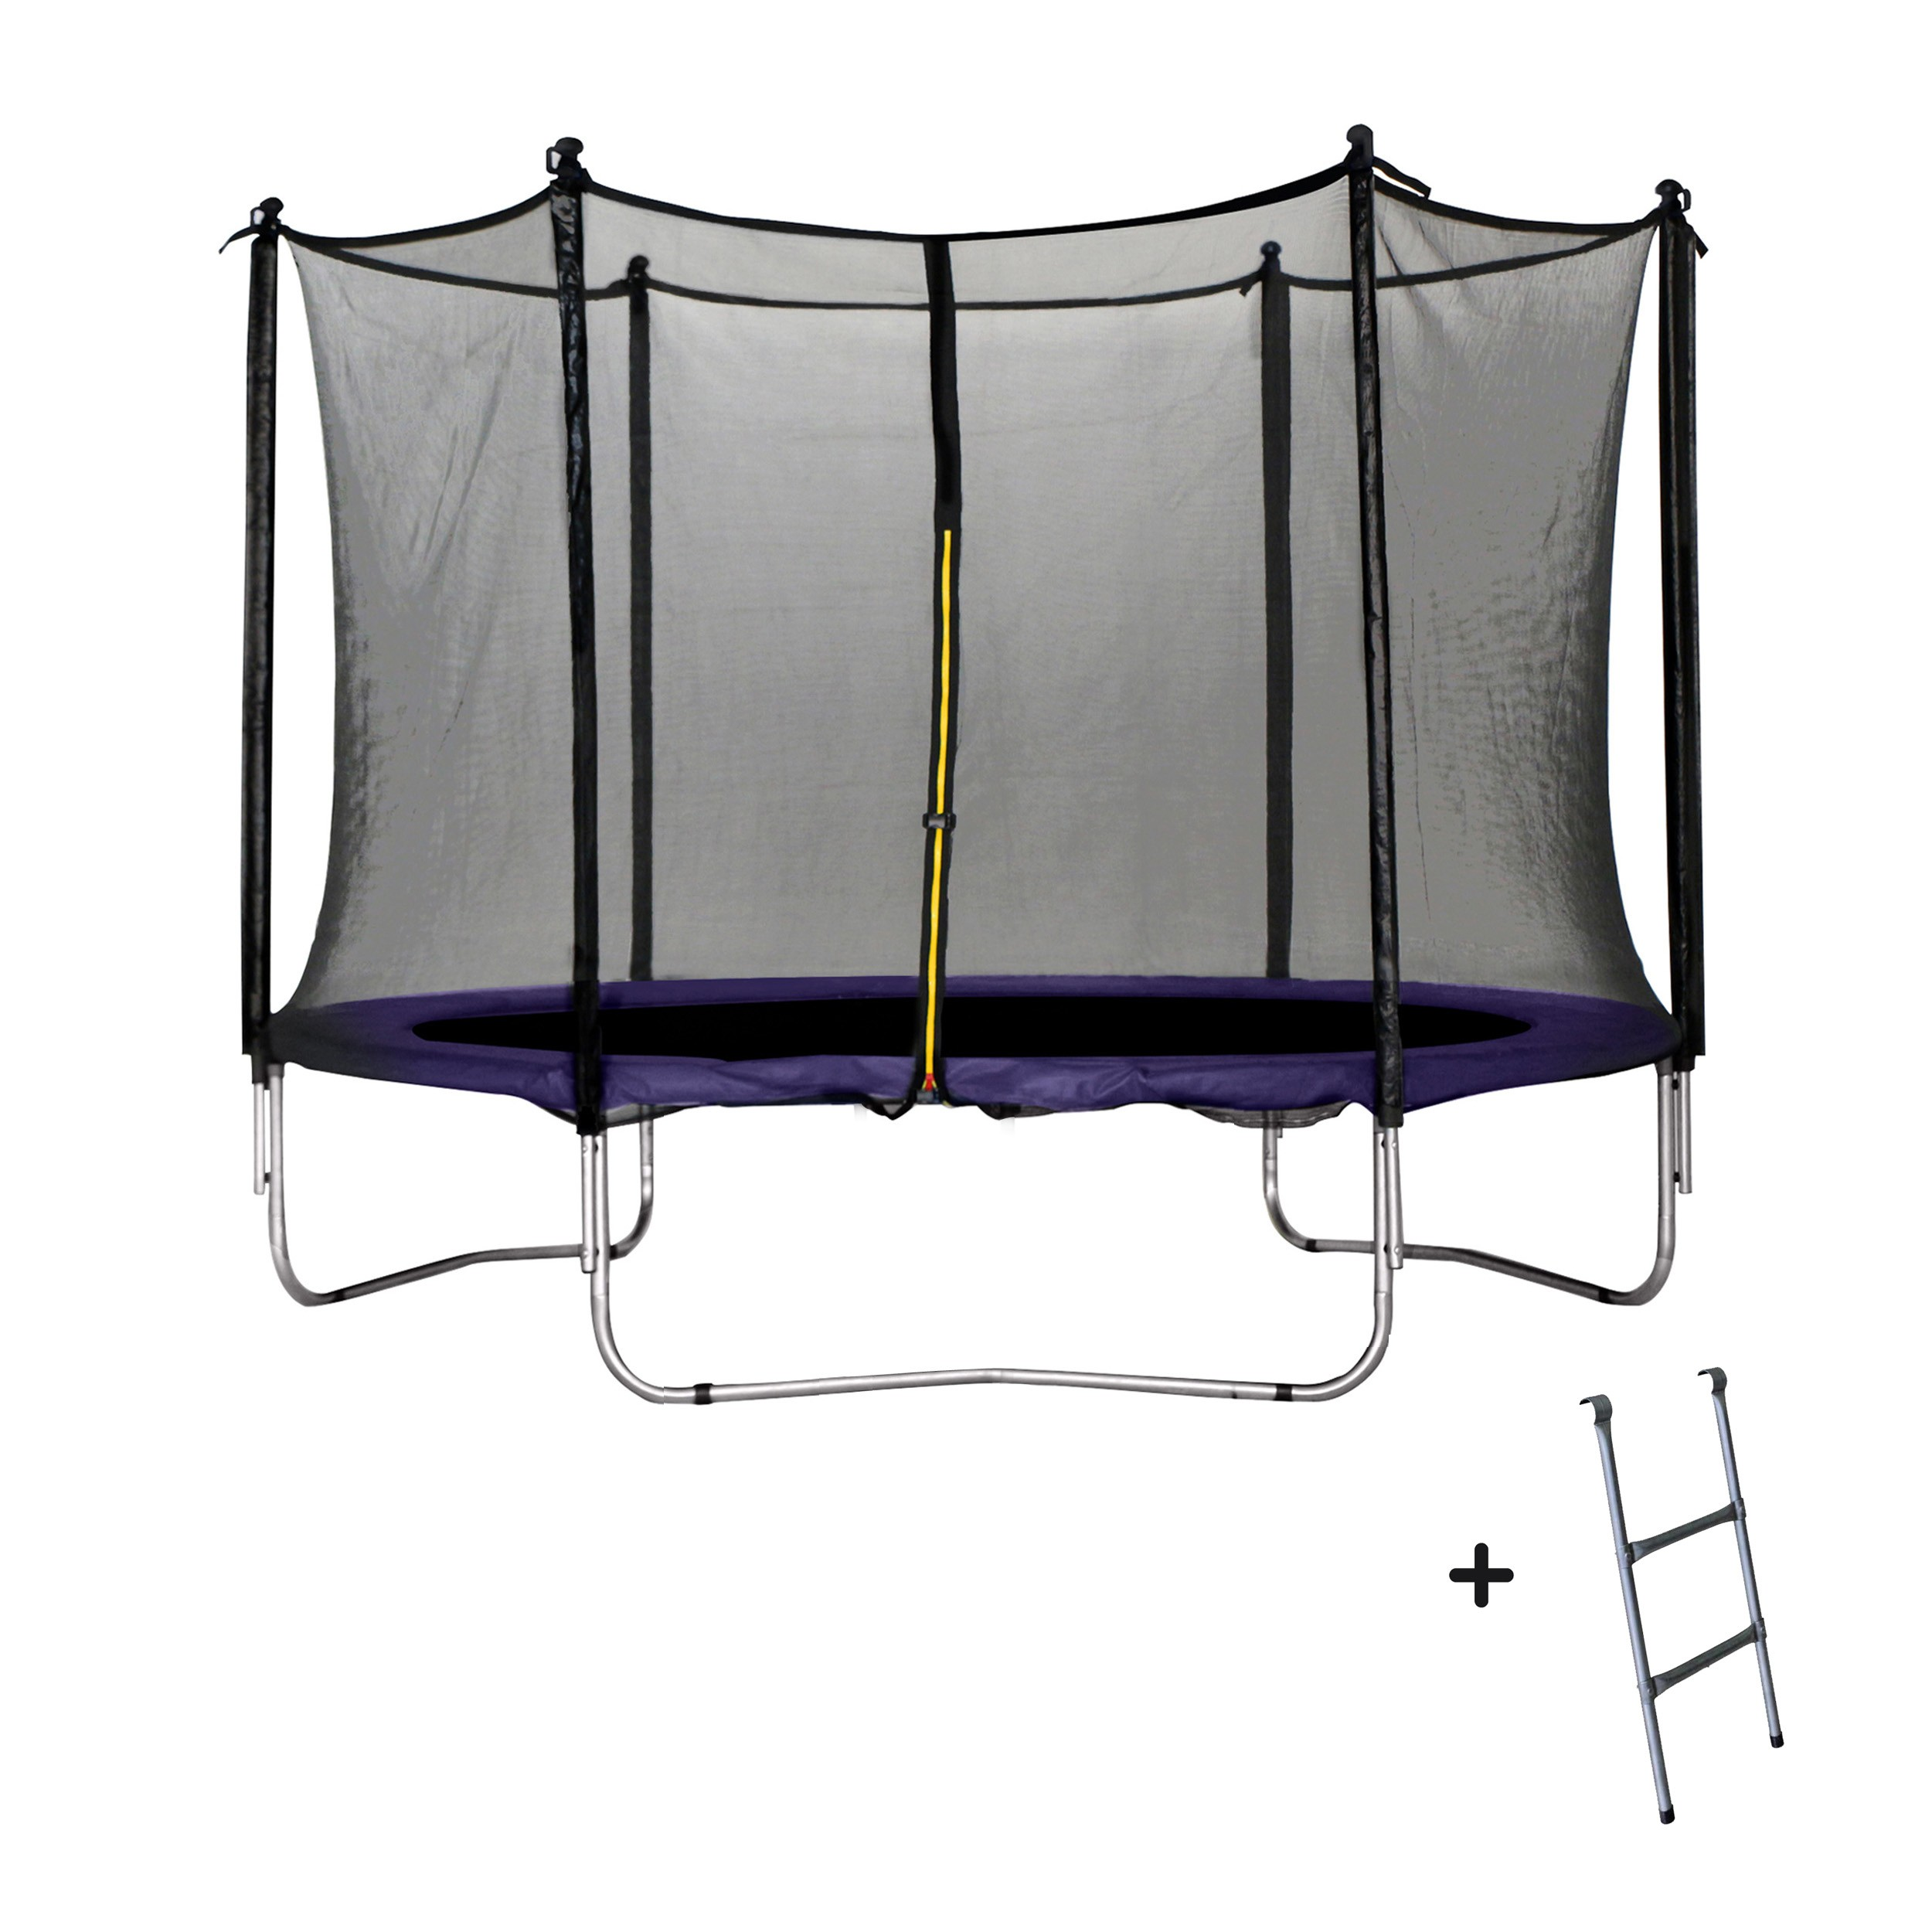 trampoline violet 305 cm jetez vous sur nos trampolines violets 305 cm rdv d co. Black Bedroom Furniture Sets. Home Design Ideas